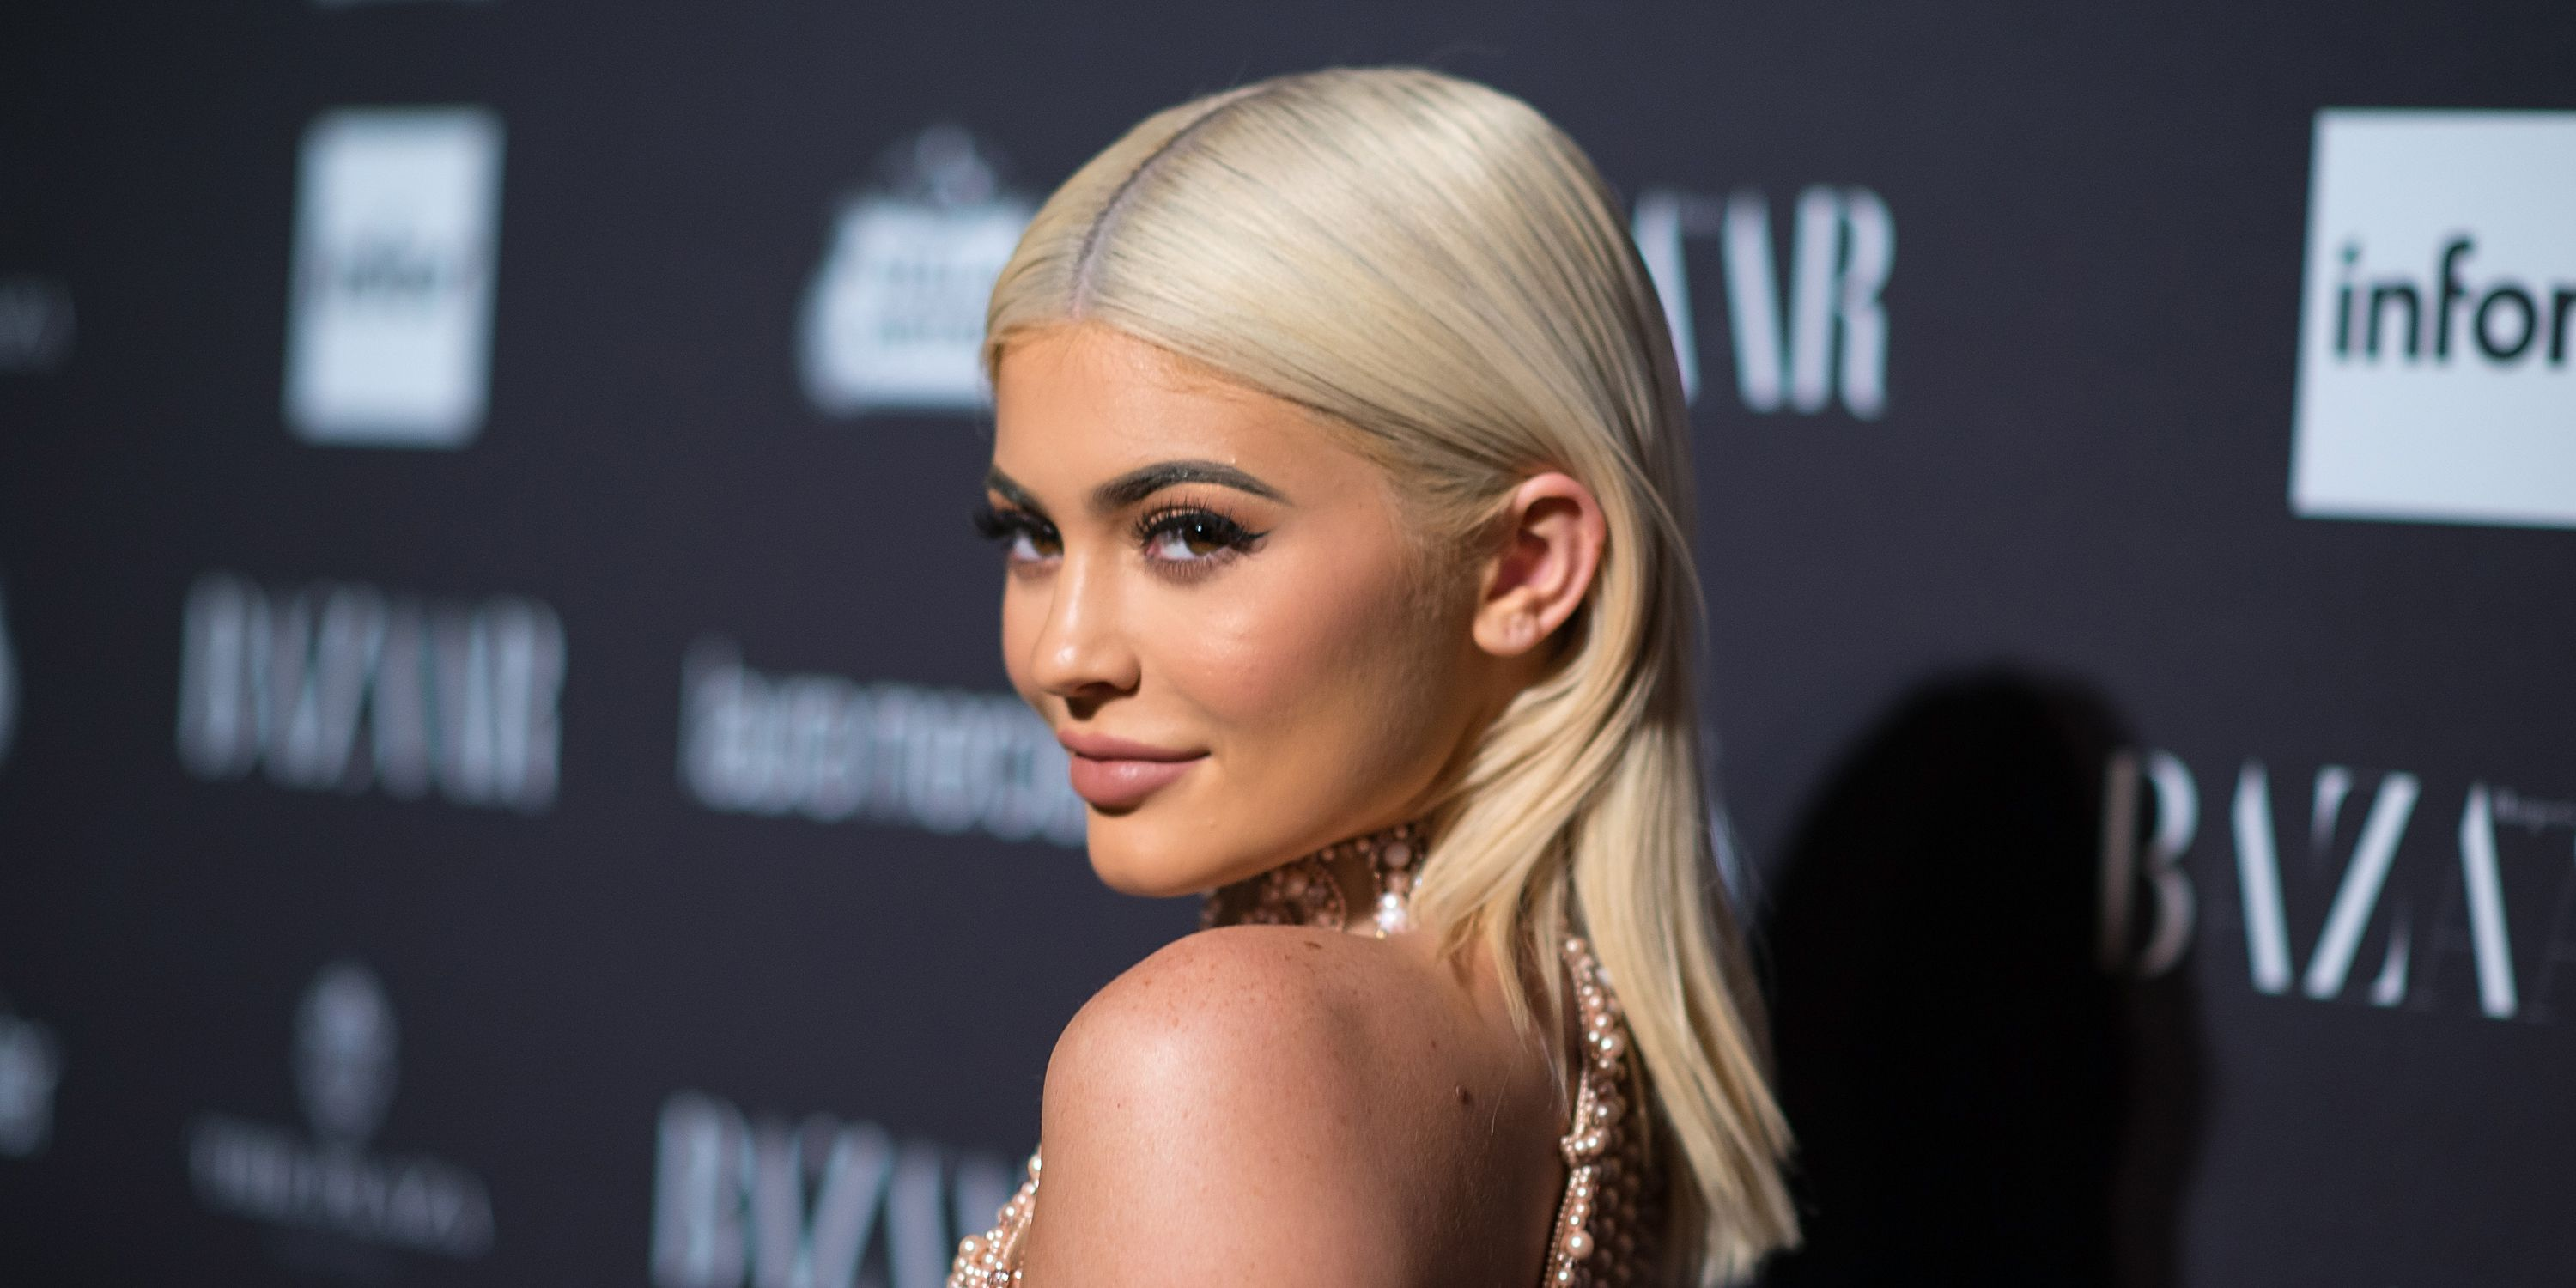 Kylie Jenner just gave a tour of the inside of her home and woah